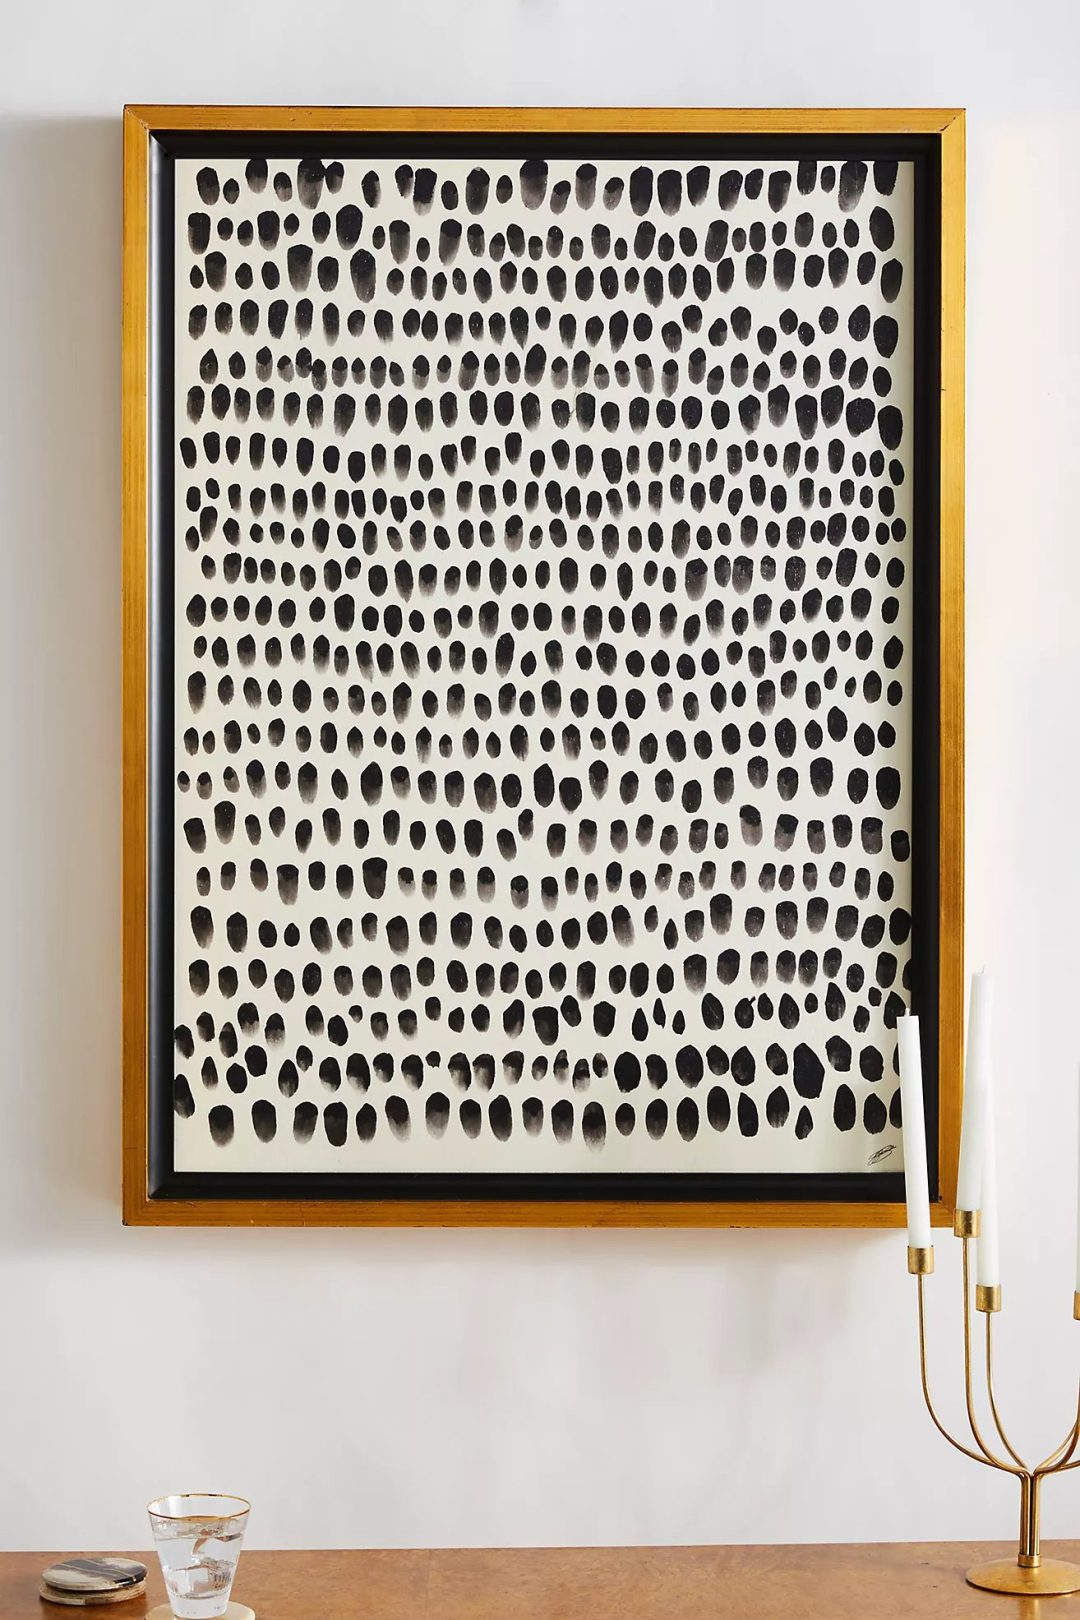 Abstract black and white wall art with dots